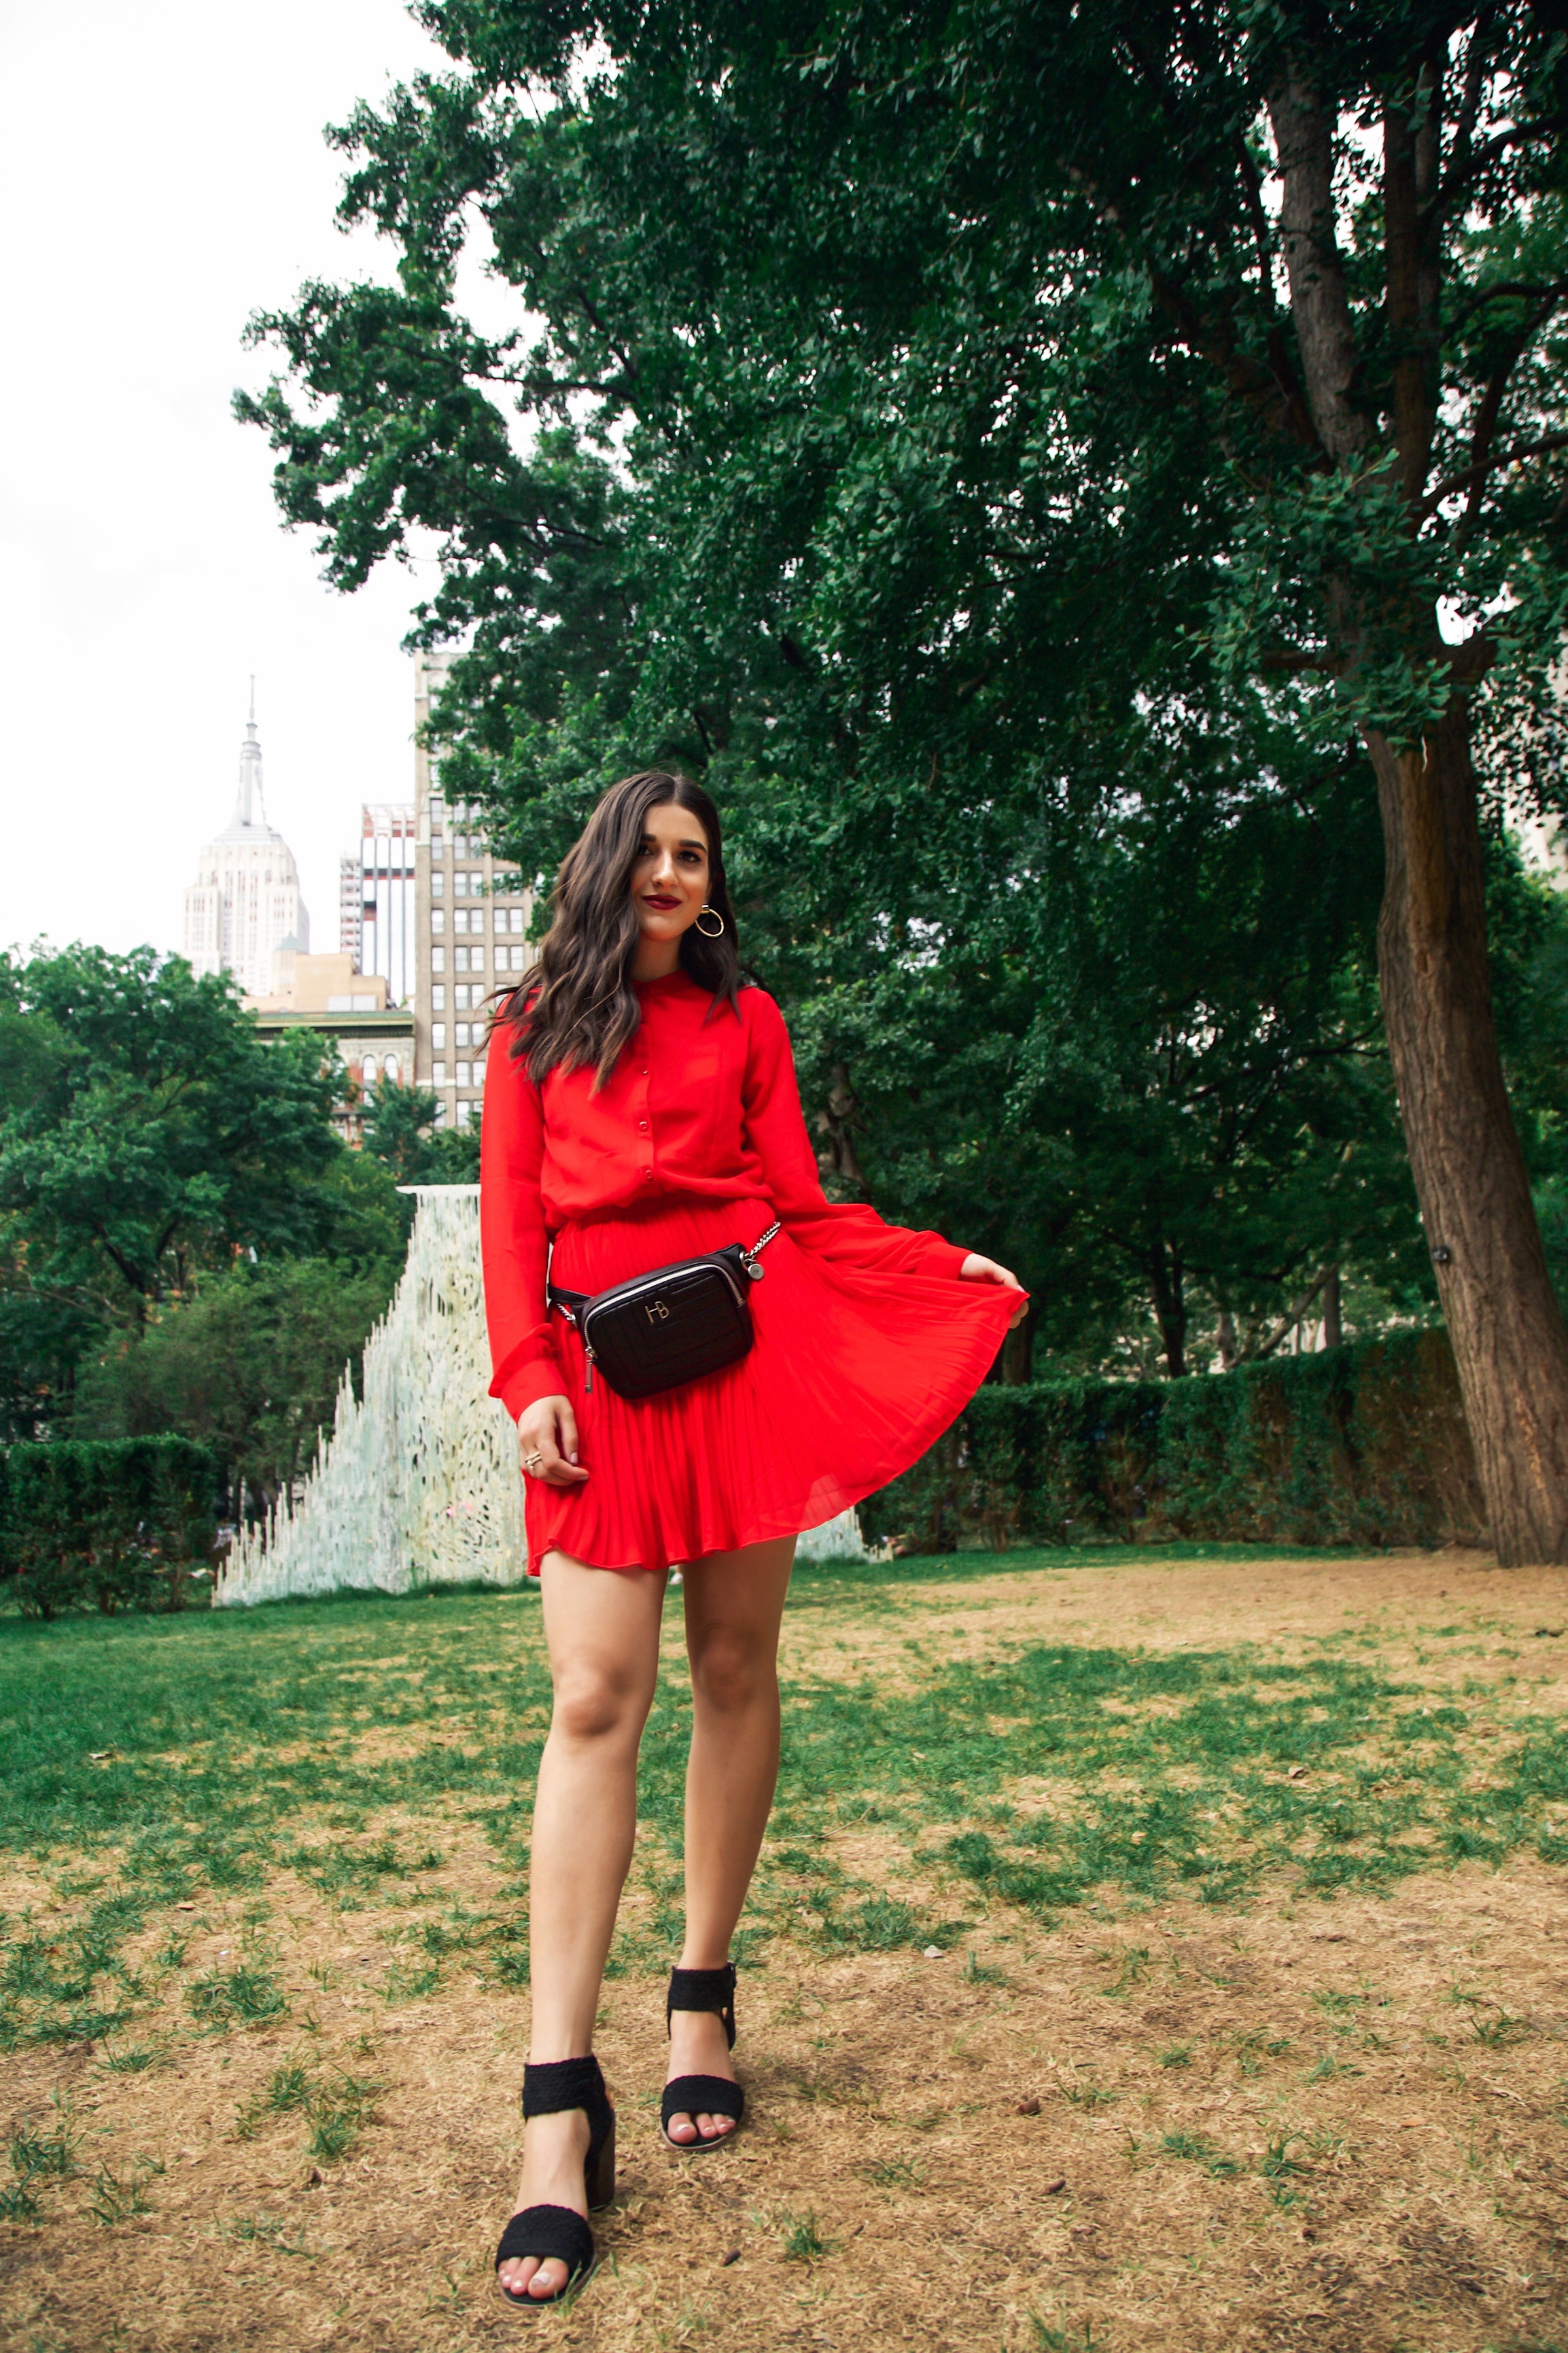 What Do Bloggers Do With All The Free Products They Receive Red Pleated Dress Black Belt Bag Esther Santer Fashion Blog NYC Street Style Blogger Outfit OOTD Trendy ASOS Vince Camuto Braided Sandals Shoes Hair Women Girl Fanny Pack Fall Summer Shopping.jpg